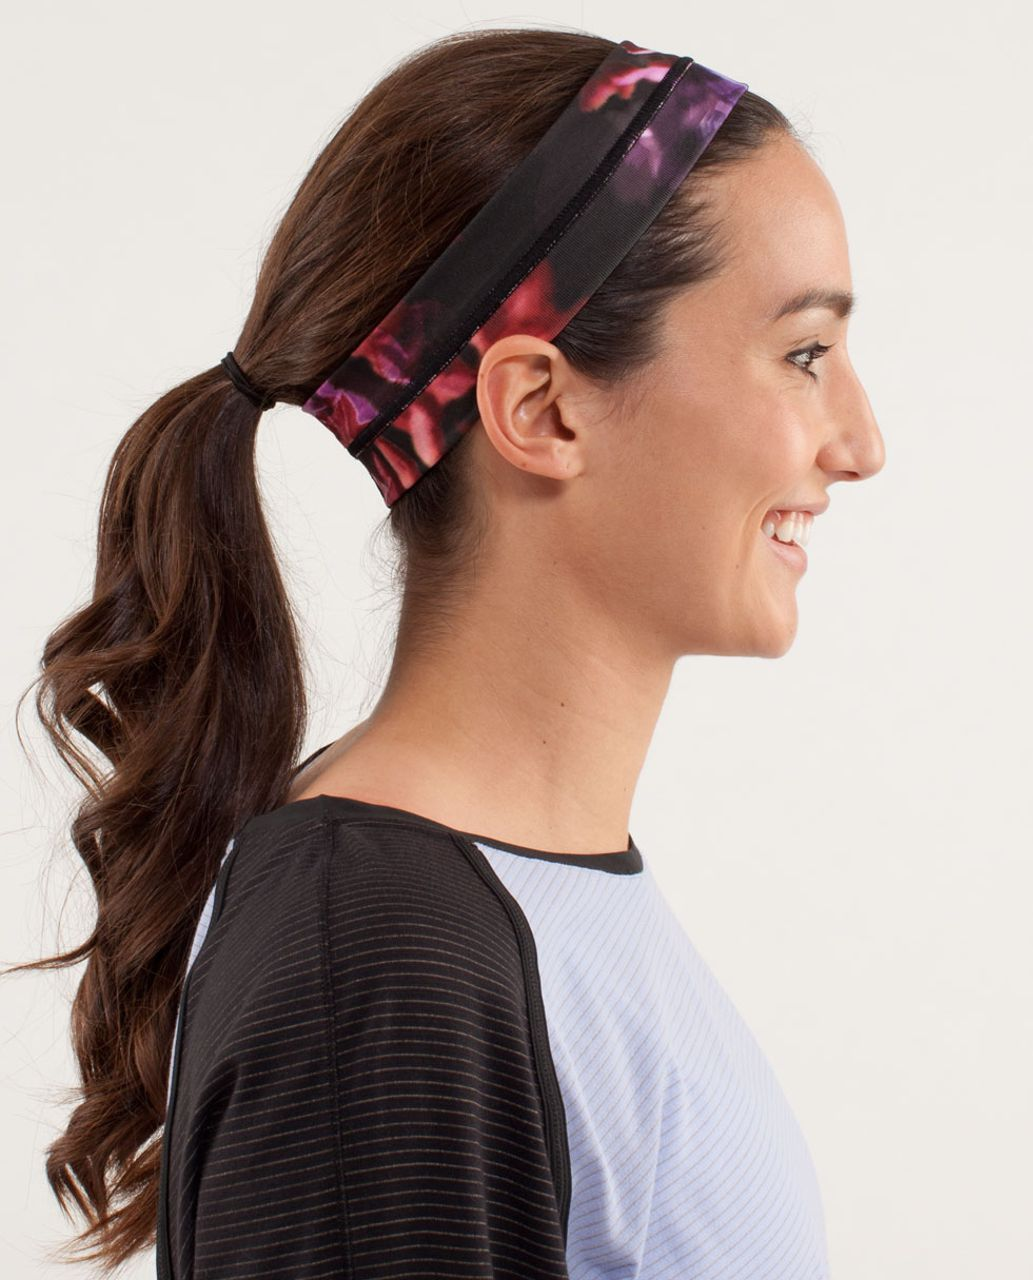 Lululemon Fly Away Tamer Headband - Spring Has Sprung Multi